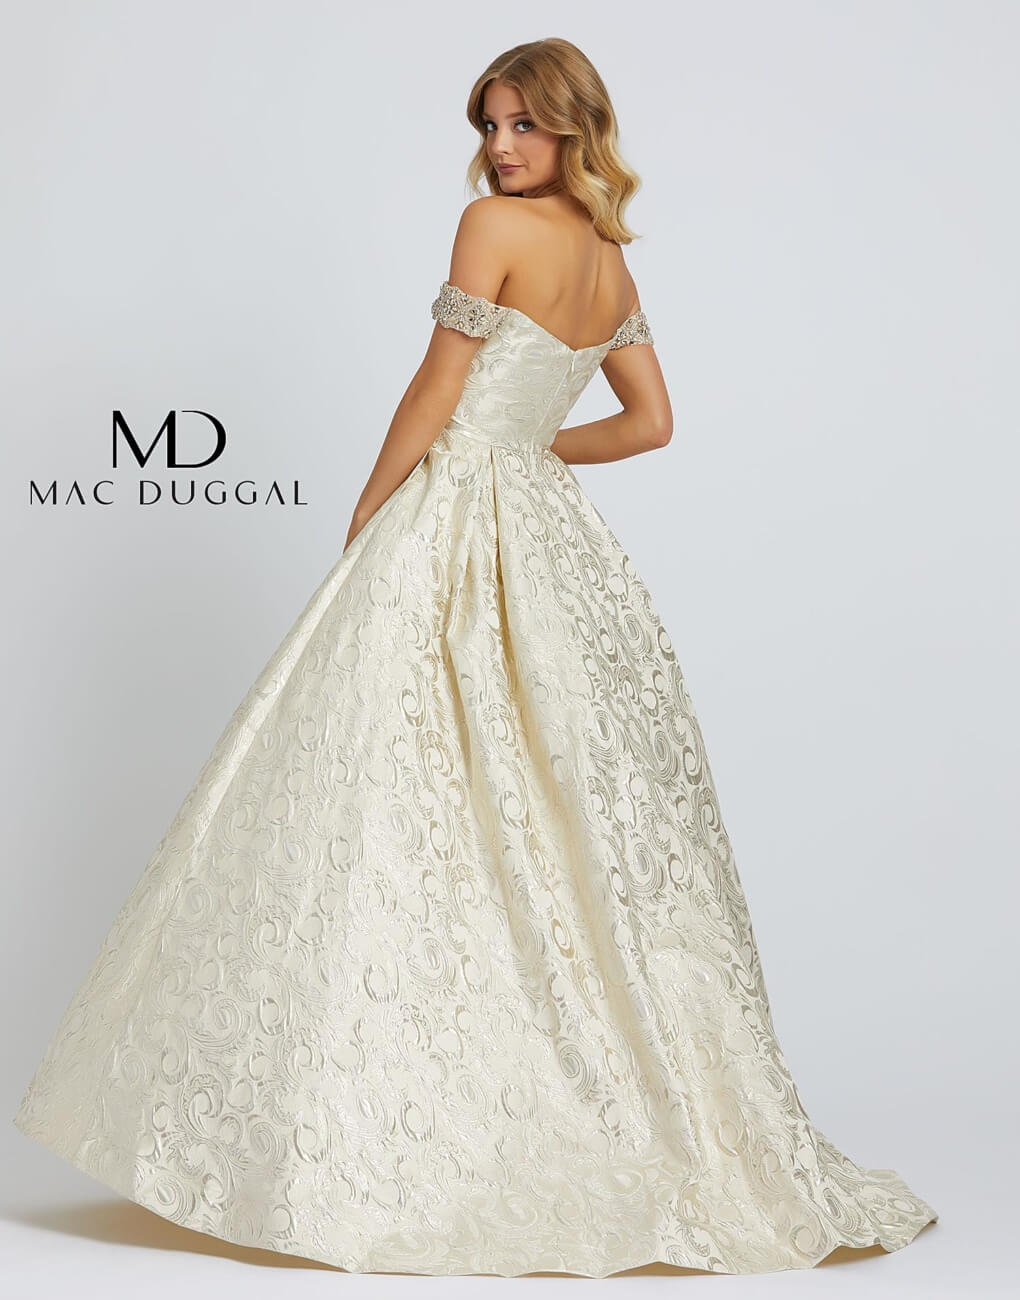 Style 67081H Mac Duggal Gold Size 14 Pageant Tall Height A-line Dress on Queenly